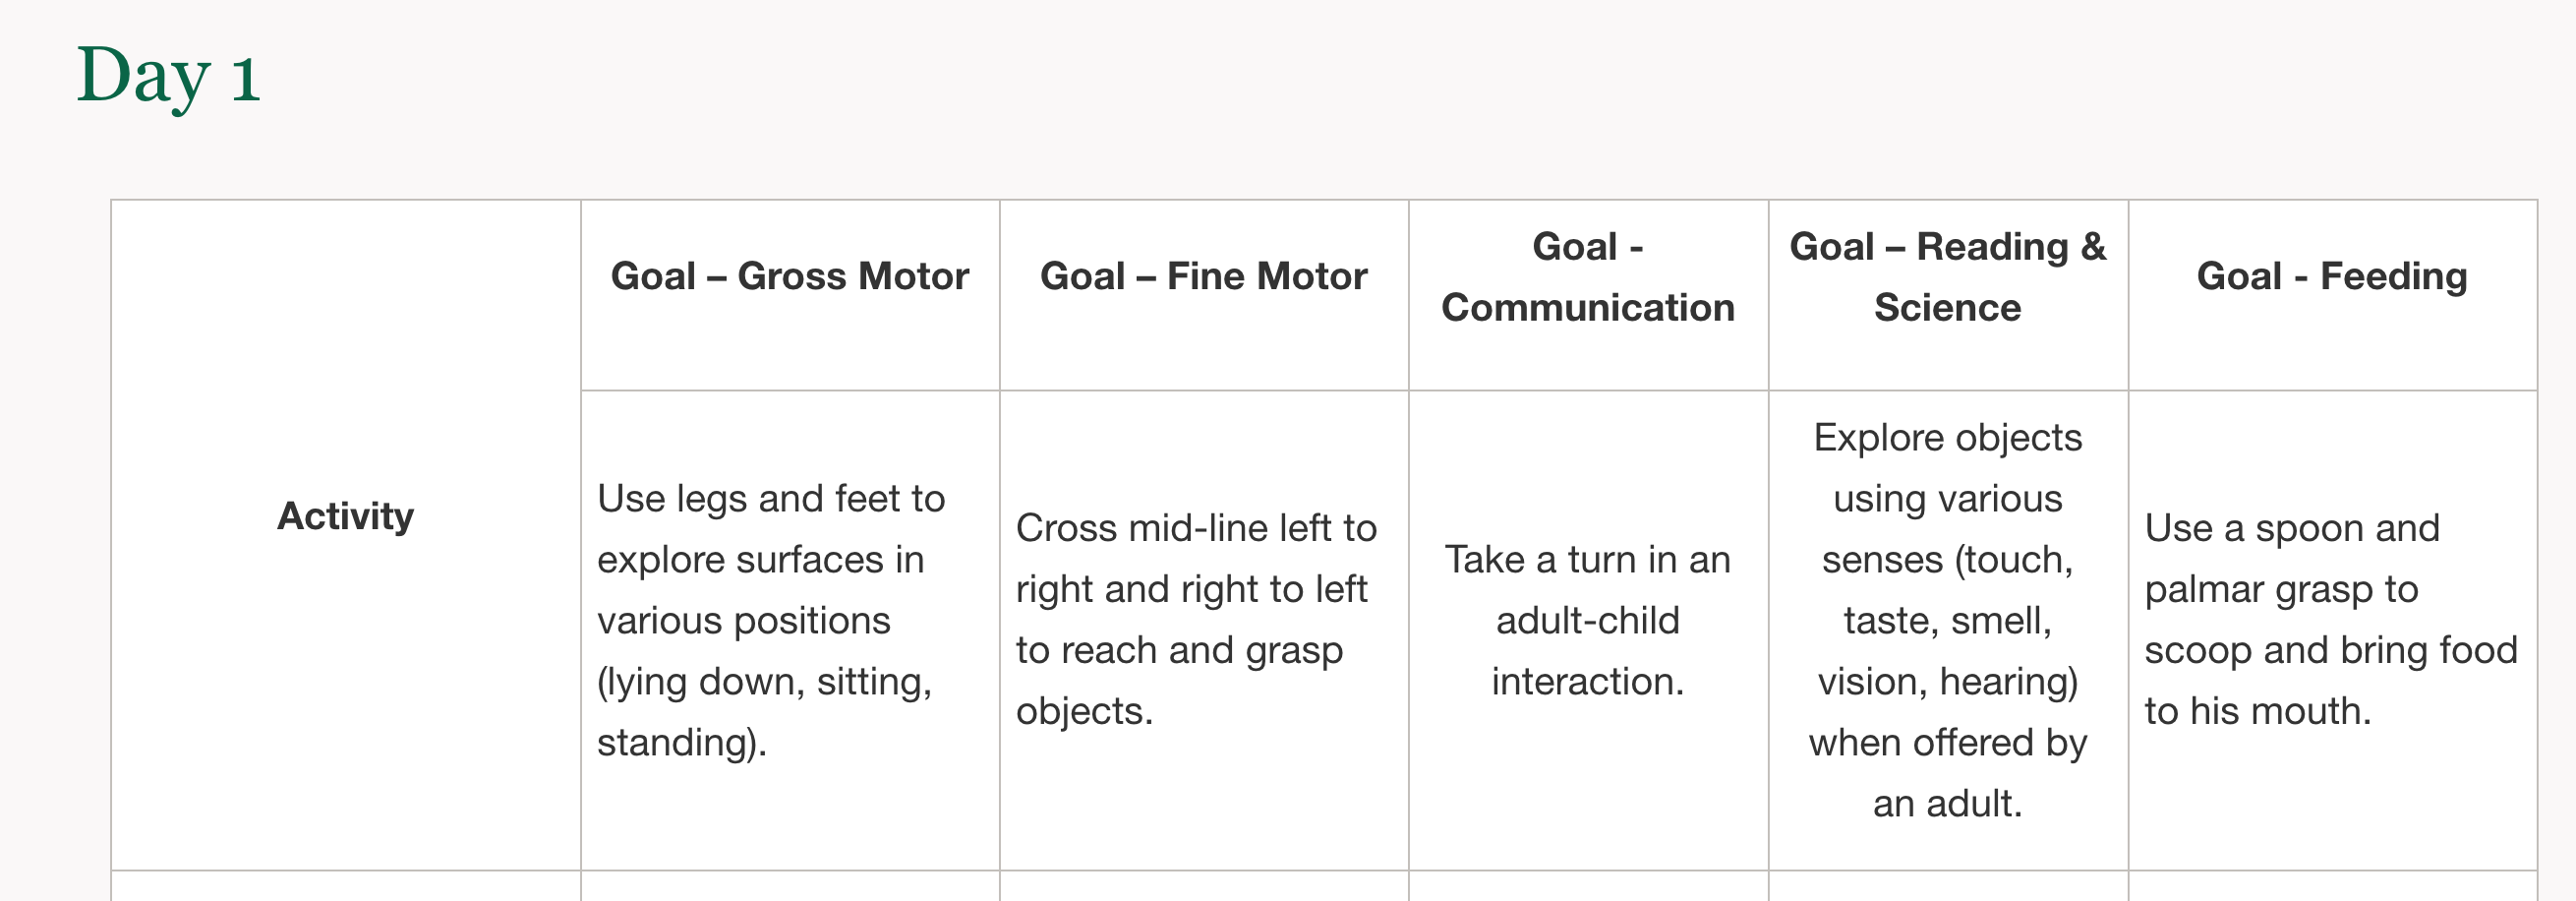 Top row of Active-Goal Matrix on Day 1